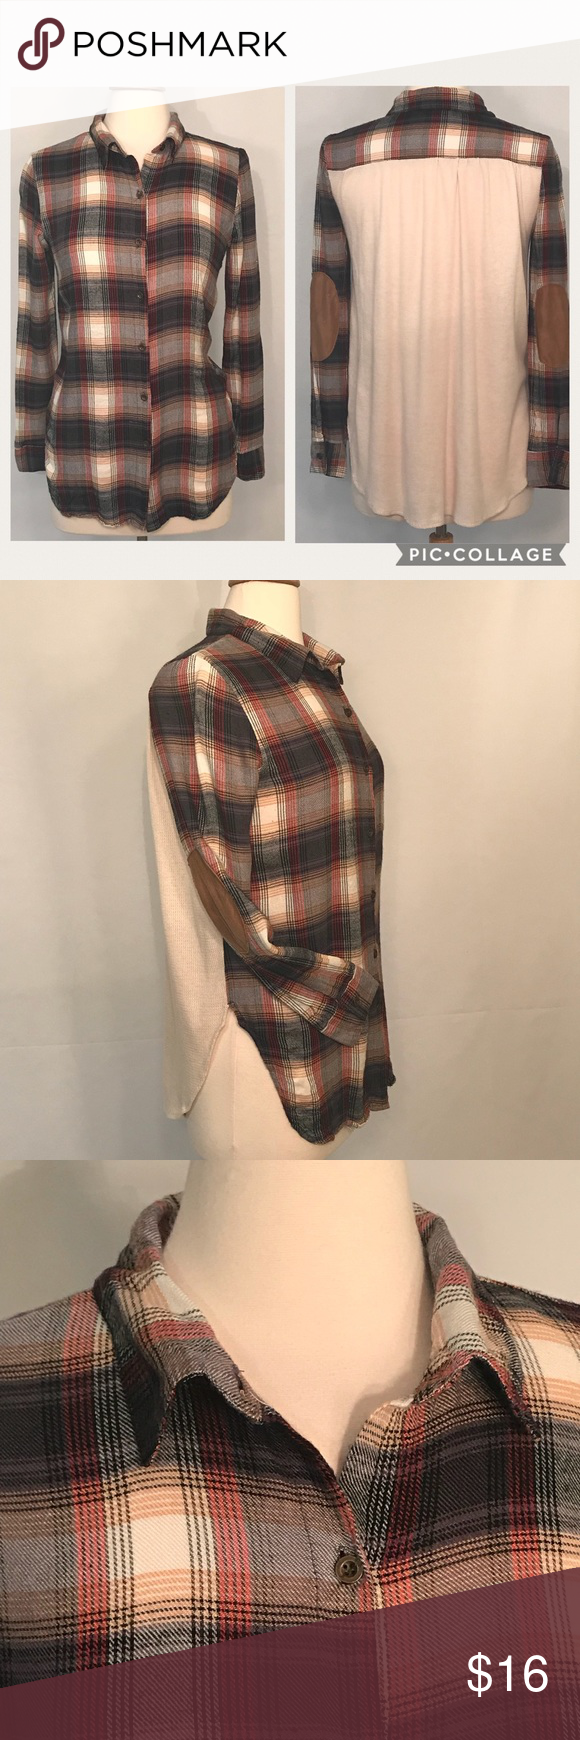 Flannel jacket with elbow patches  About a Girl Womenus Brown Plaid Flannel Shirt About a Girl Womenus